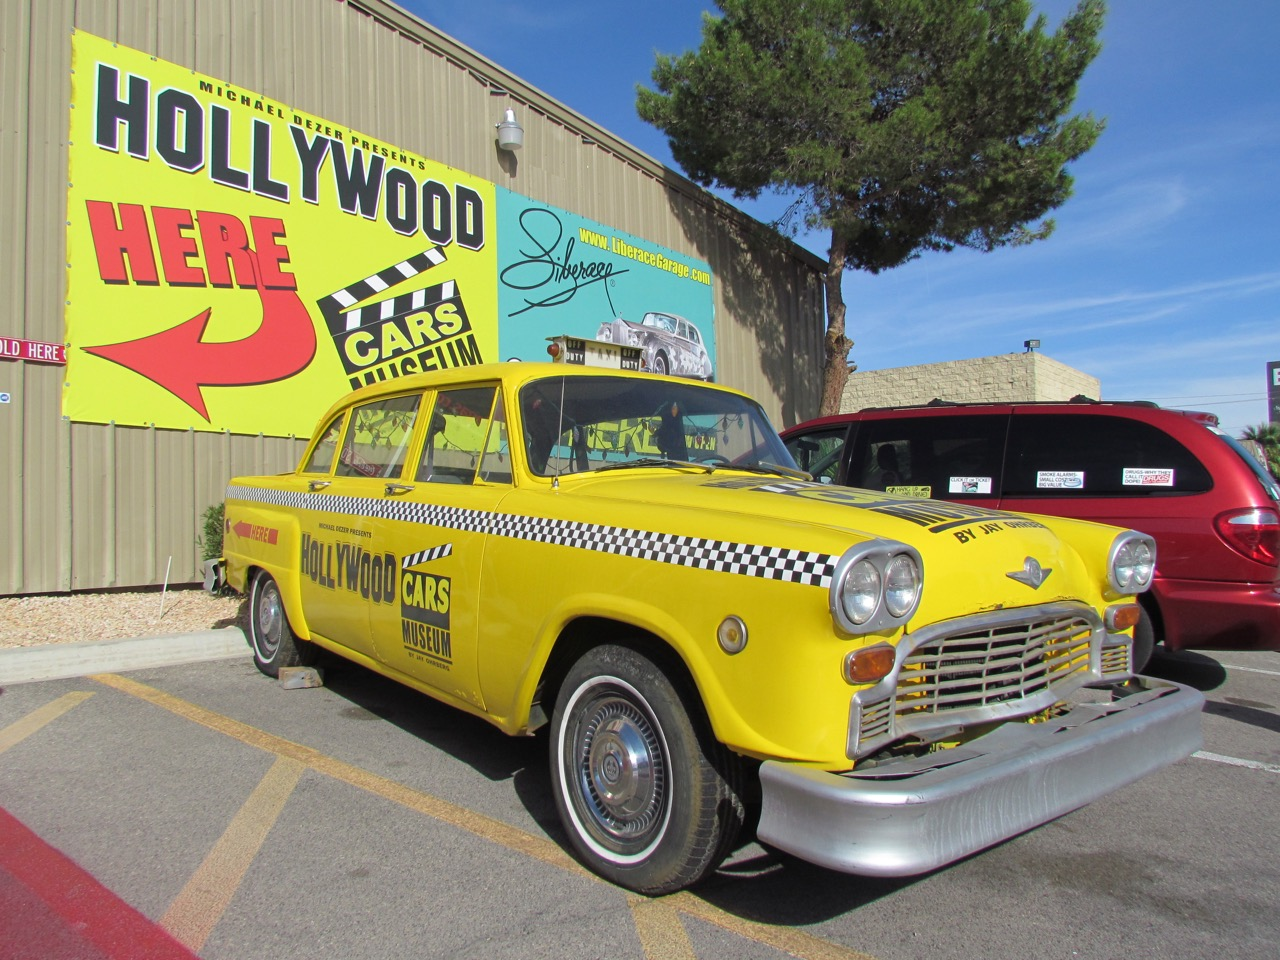 Leaving Las Vegas? Not until you visit the Hollywood Cars Museum ...